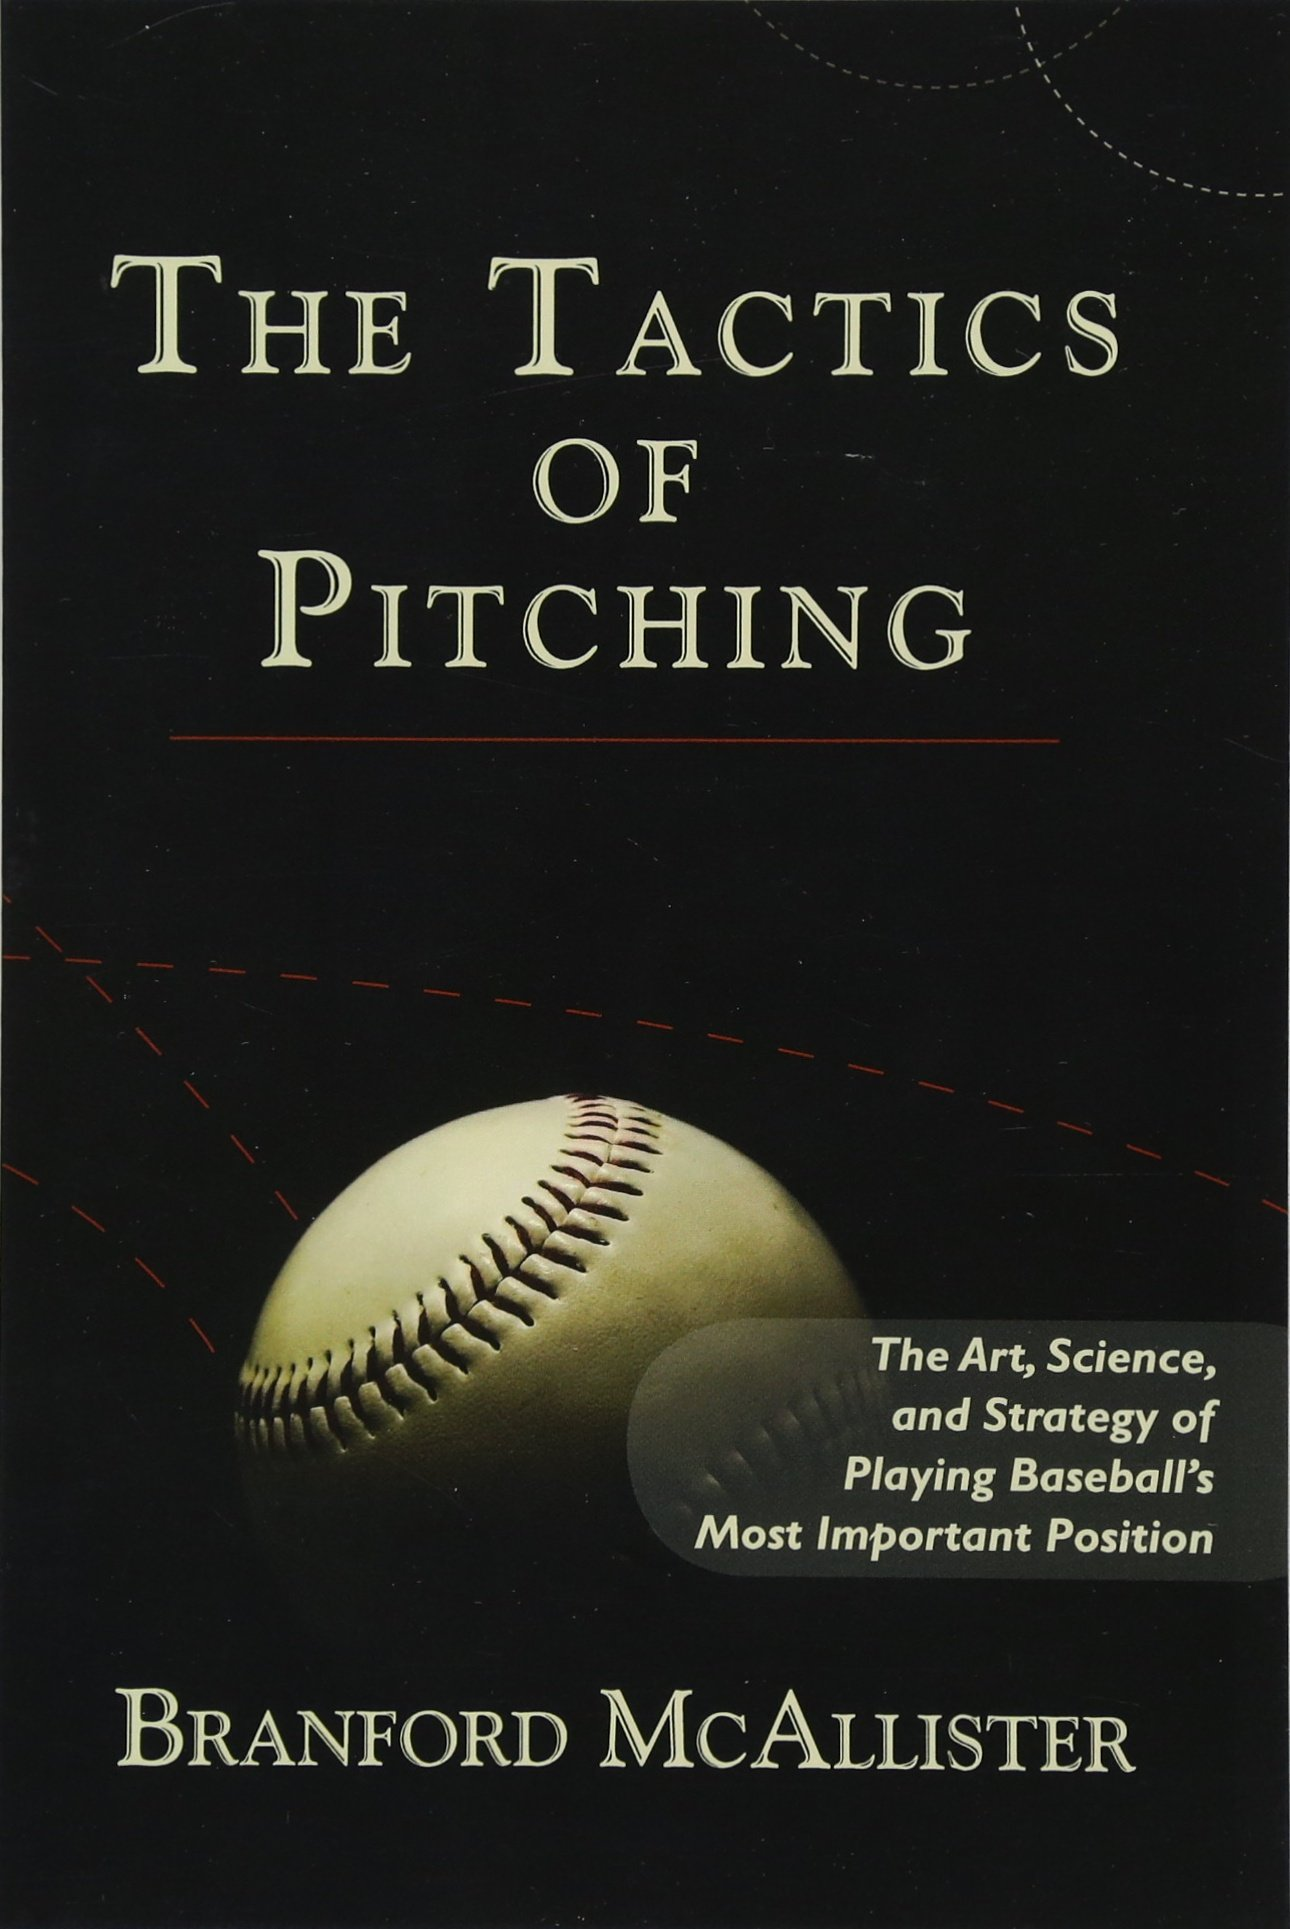 The Tactics of Pitching: The Art, Science, and Strategy of Playing  Baseball's Most Important Position: Branford McAllister: 9781482624960:  Amazon.com: Books